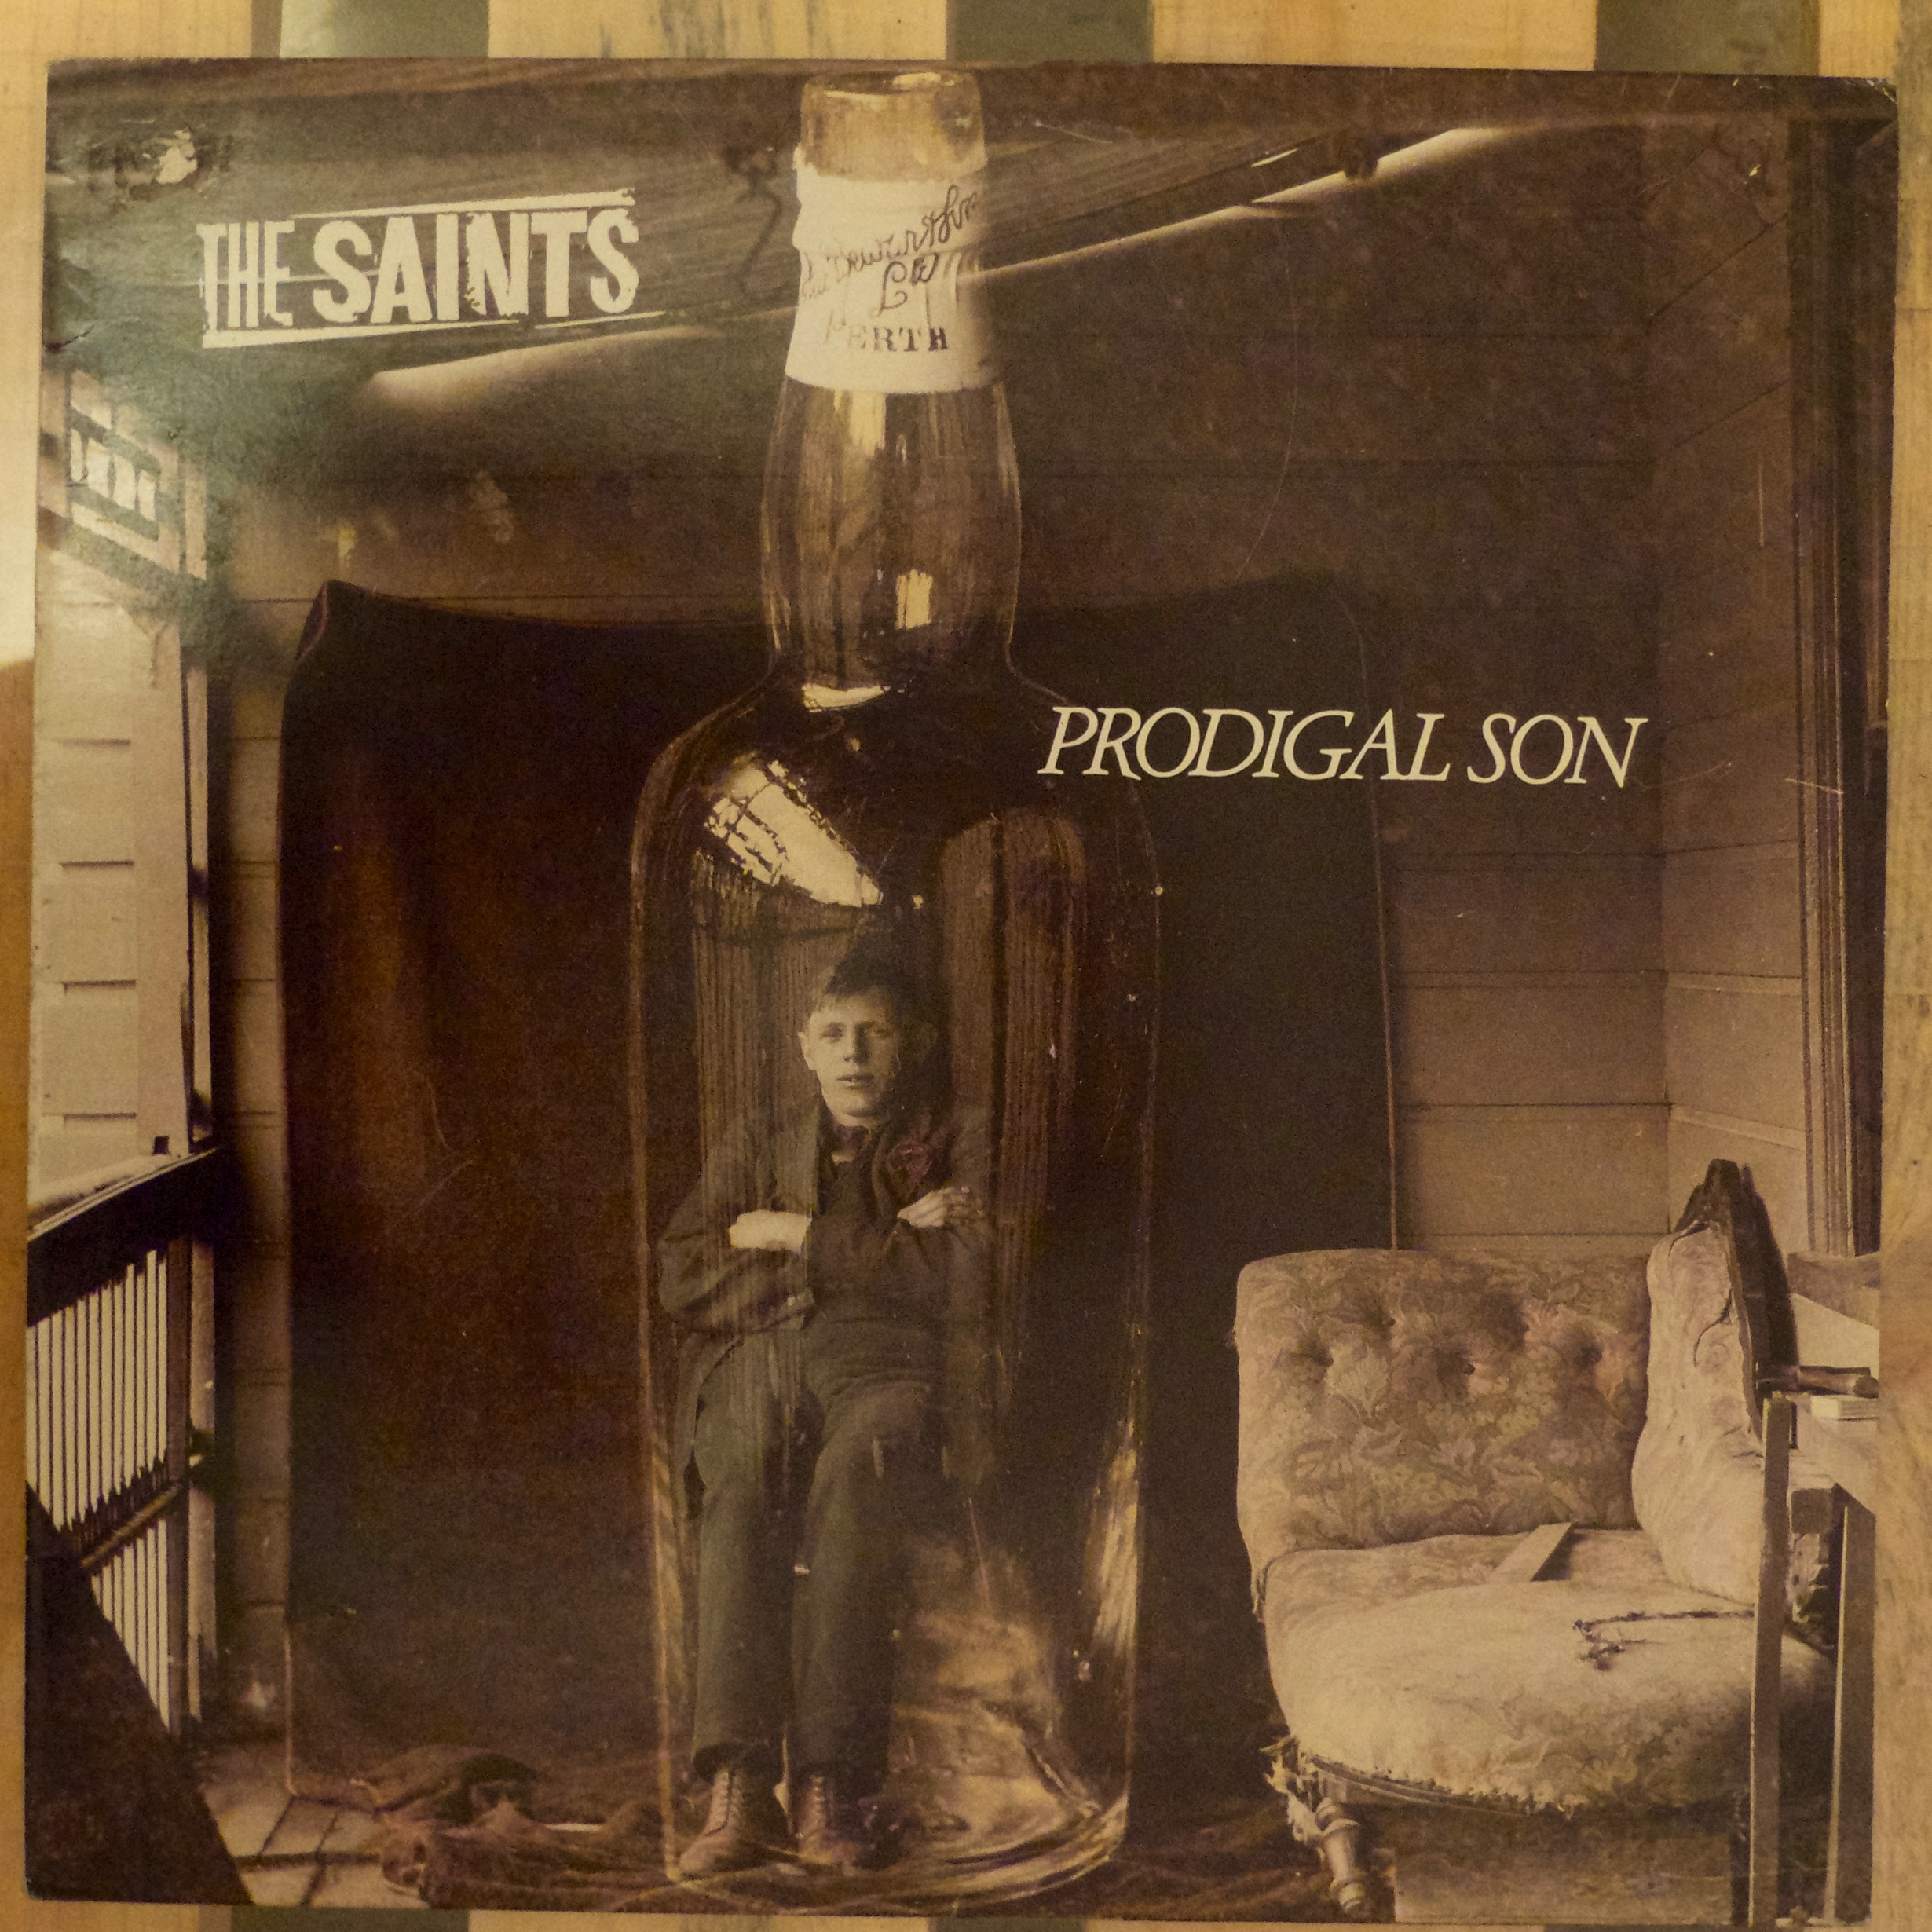 The Saints - Prodigal Son.jpg